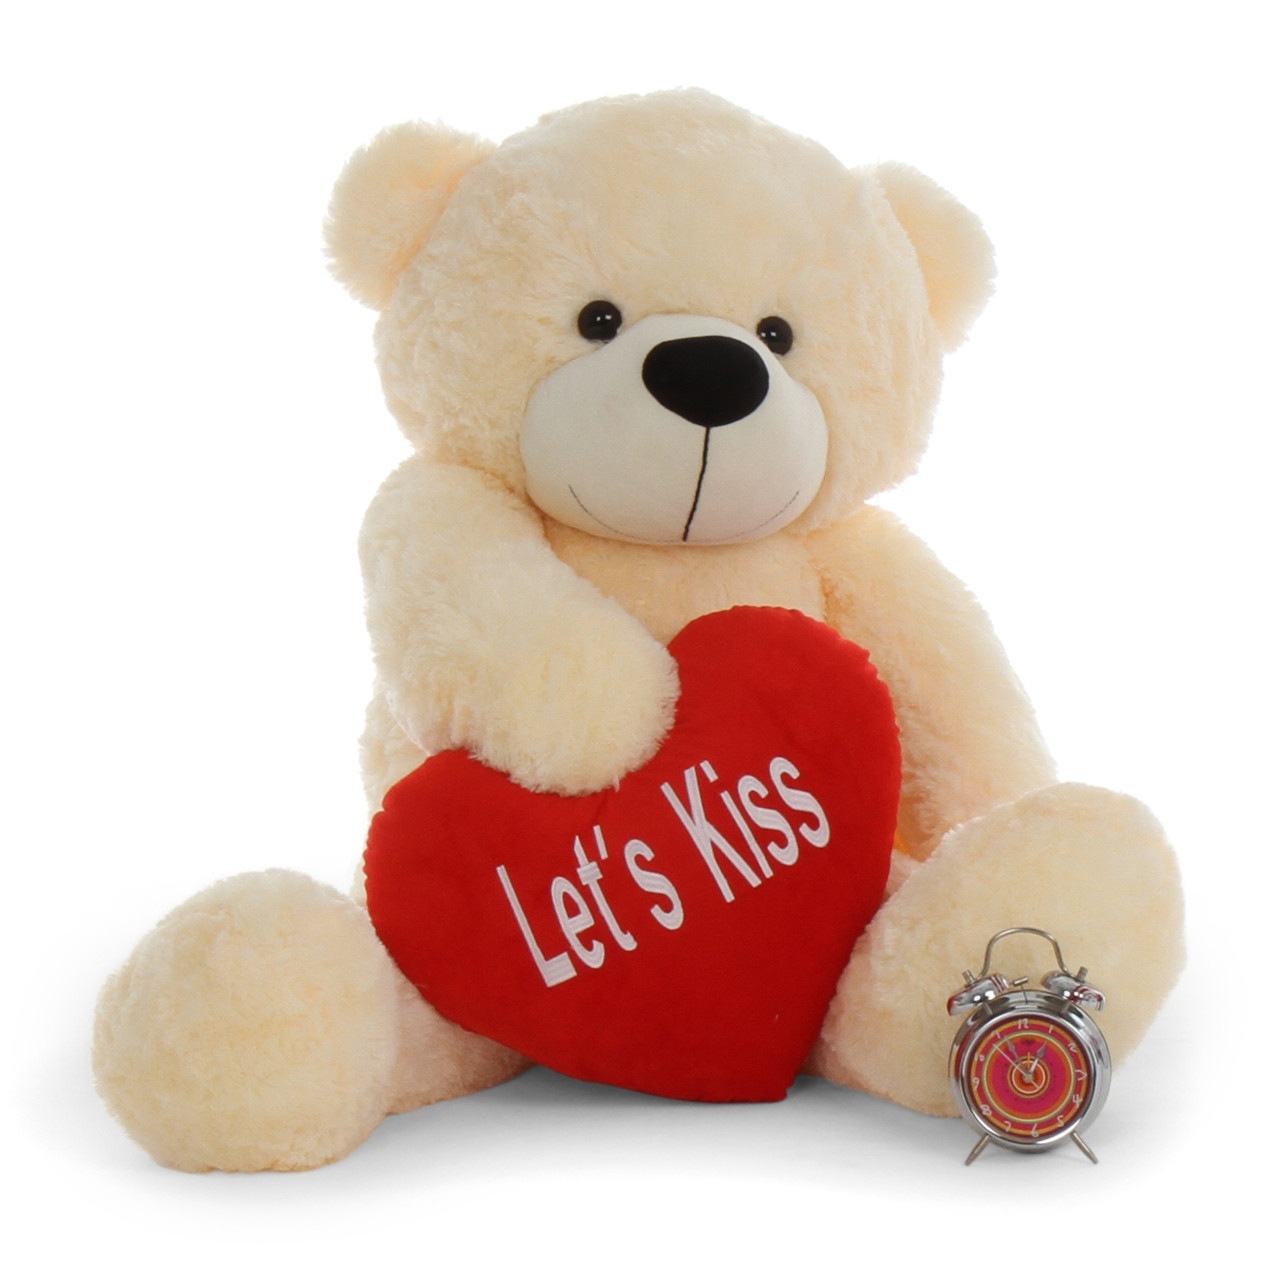 4ft Life Size Teddy Bear For Valentines Day Cream Cozy